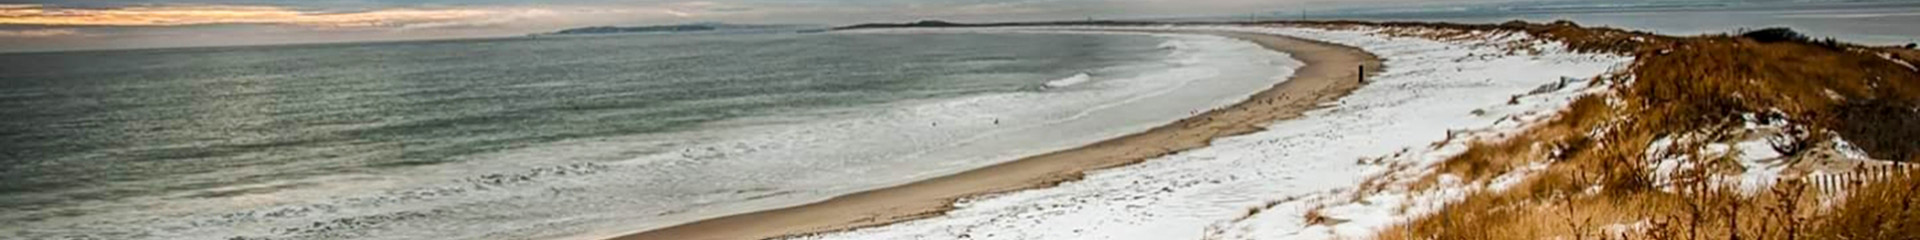 seashore in winter